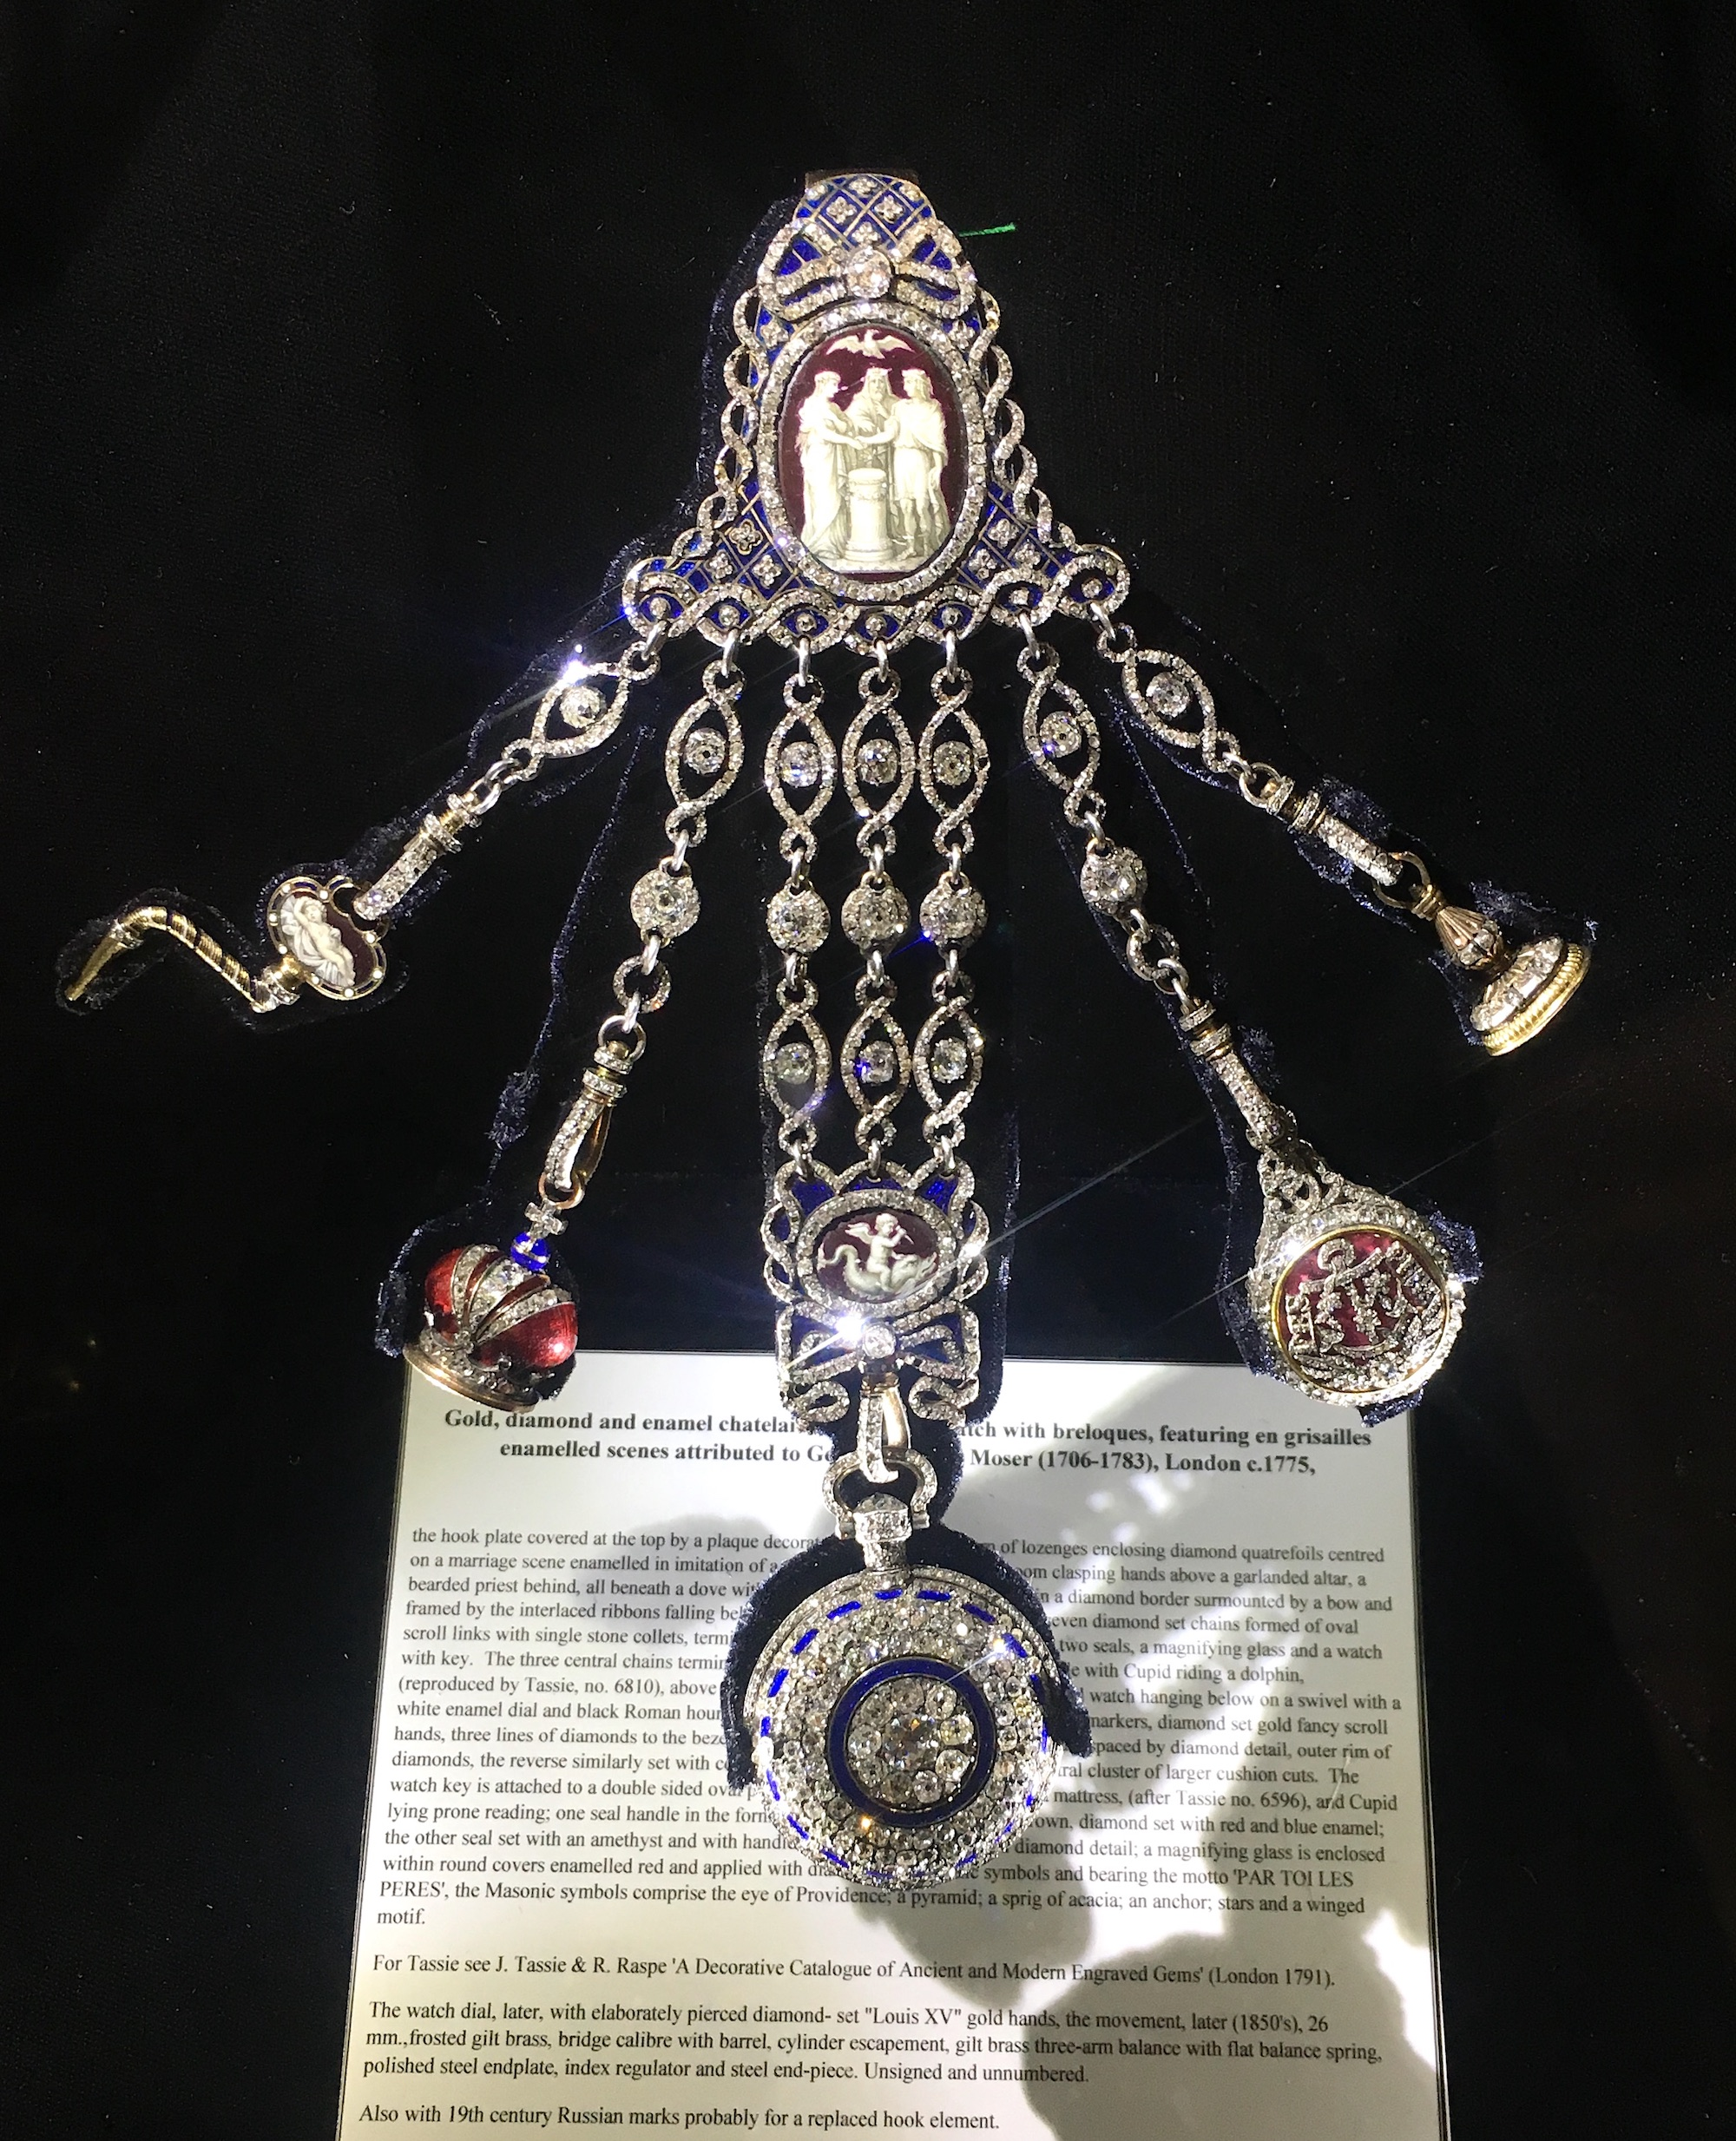 An impressive diamond chatelaine of Russian Imperial provenance exhibited by S.J. Phillips.